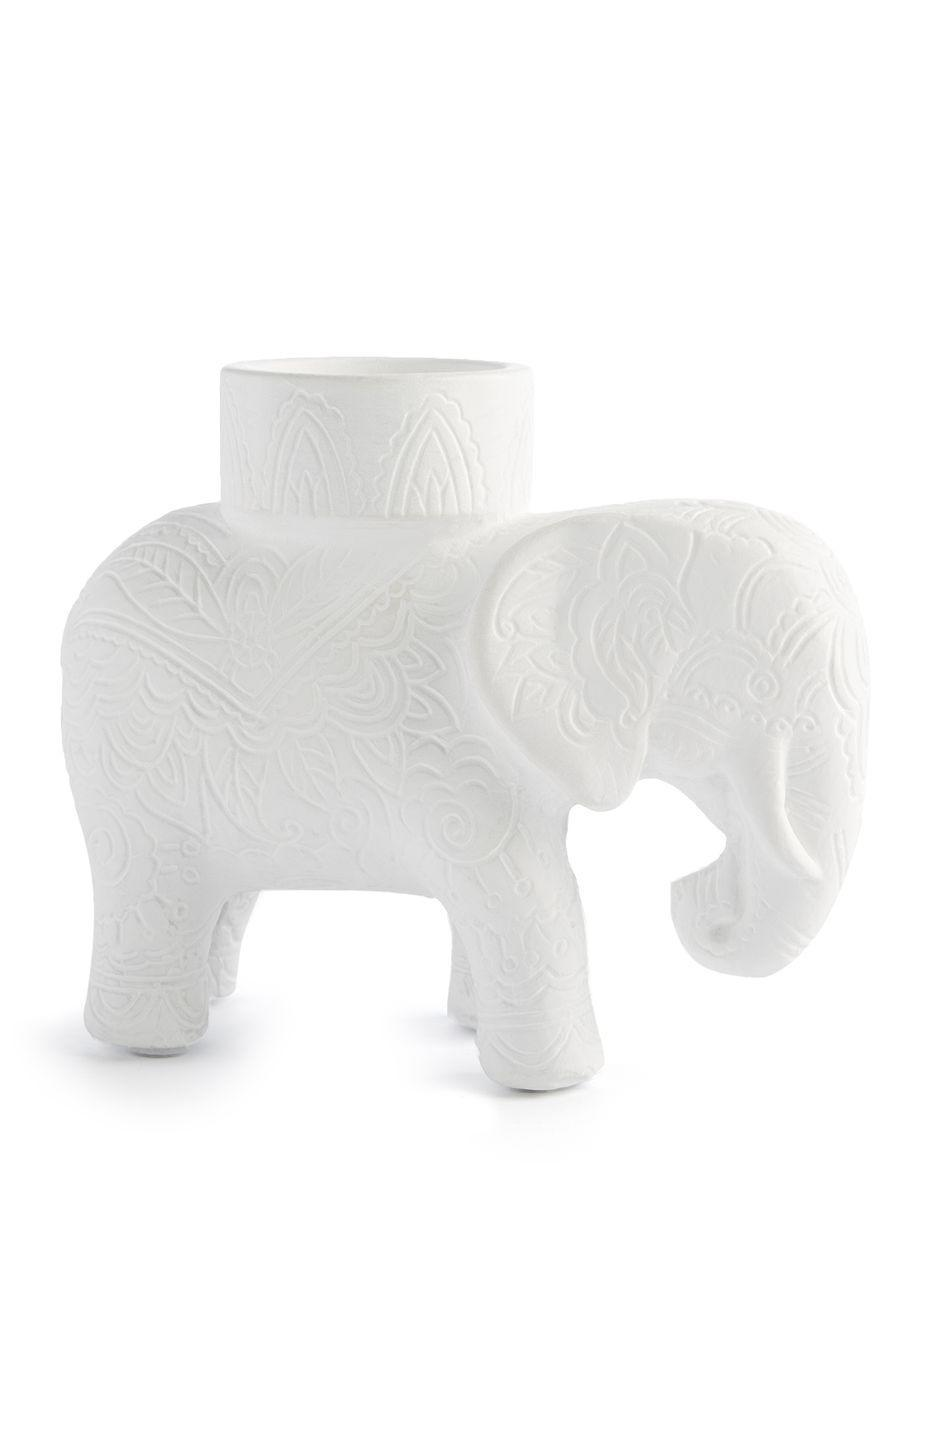 <p>Elephant candle holder, price unknown</p>